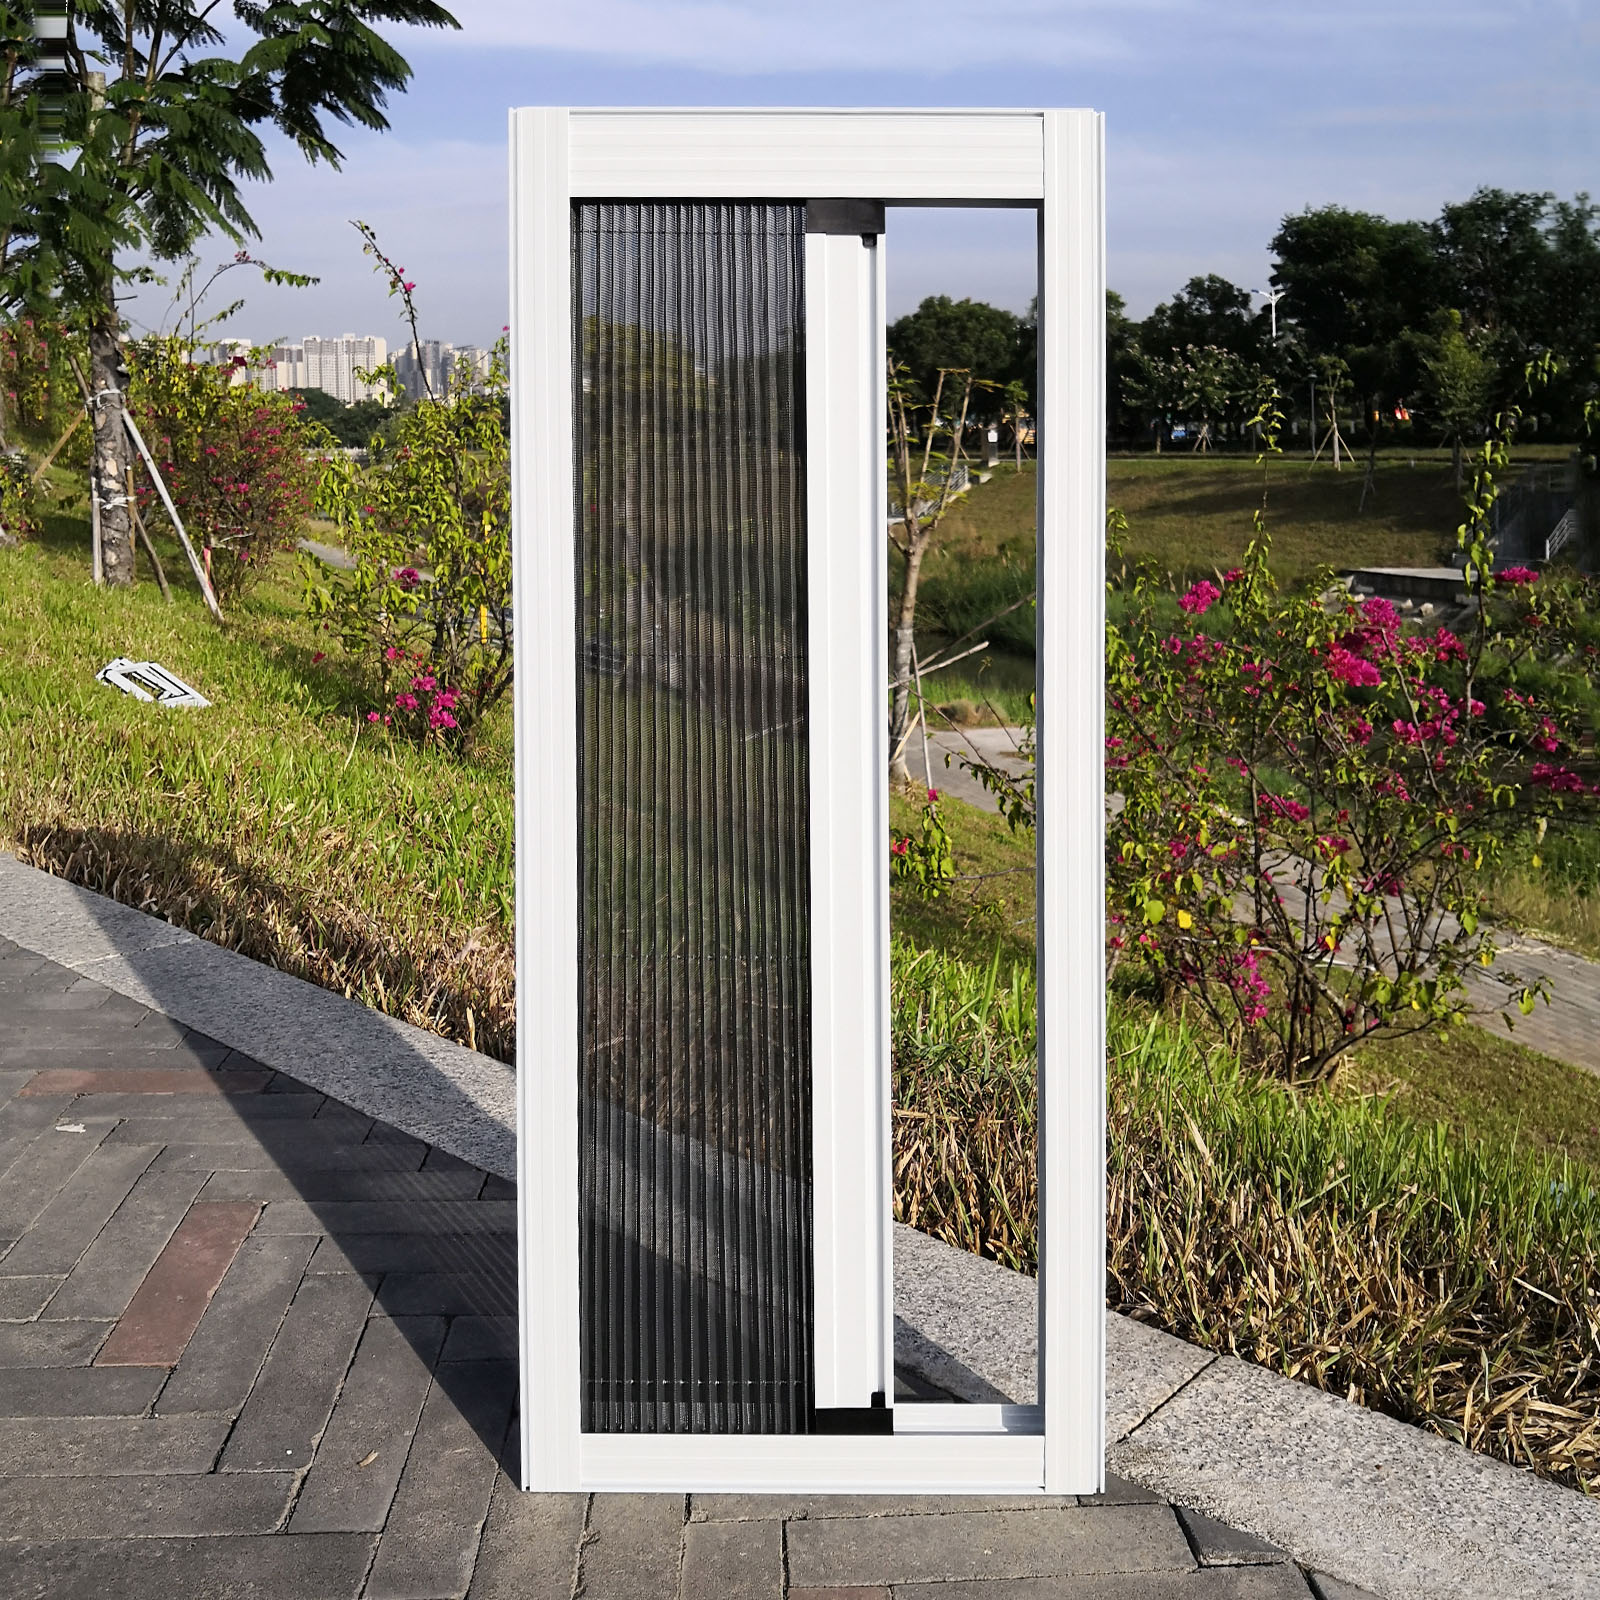 Door fire door screens Folding Screen plisse fly screen window screen cover